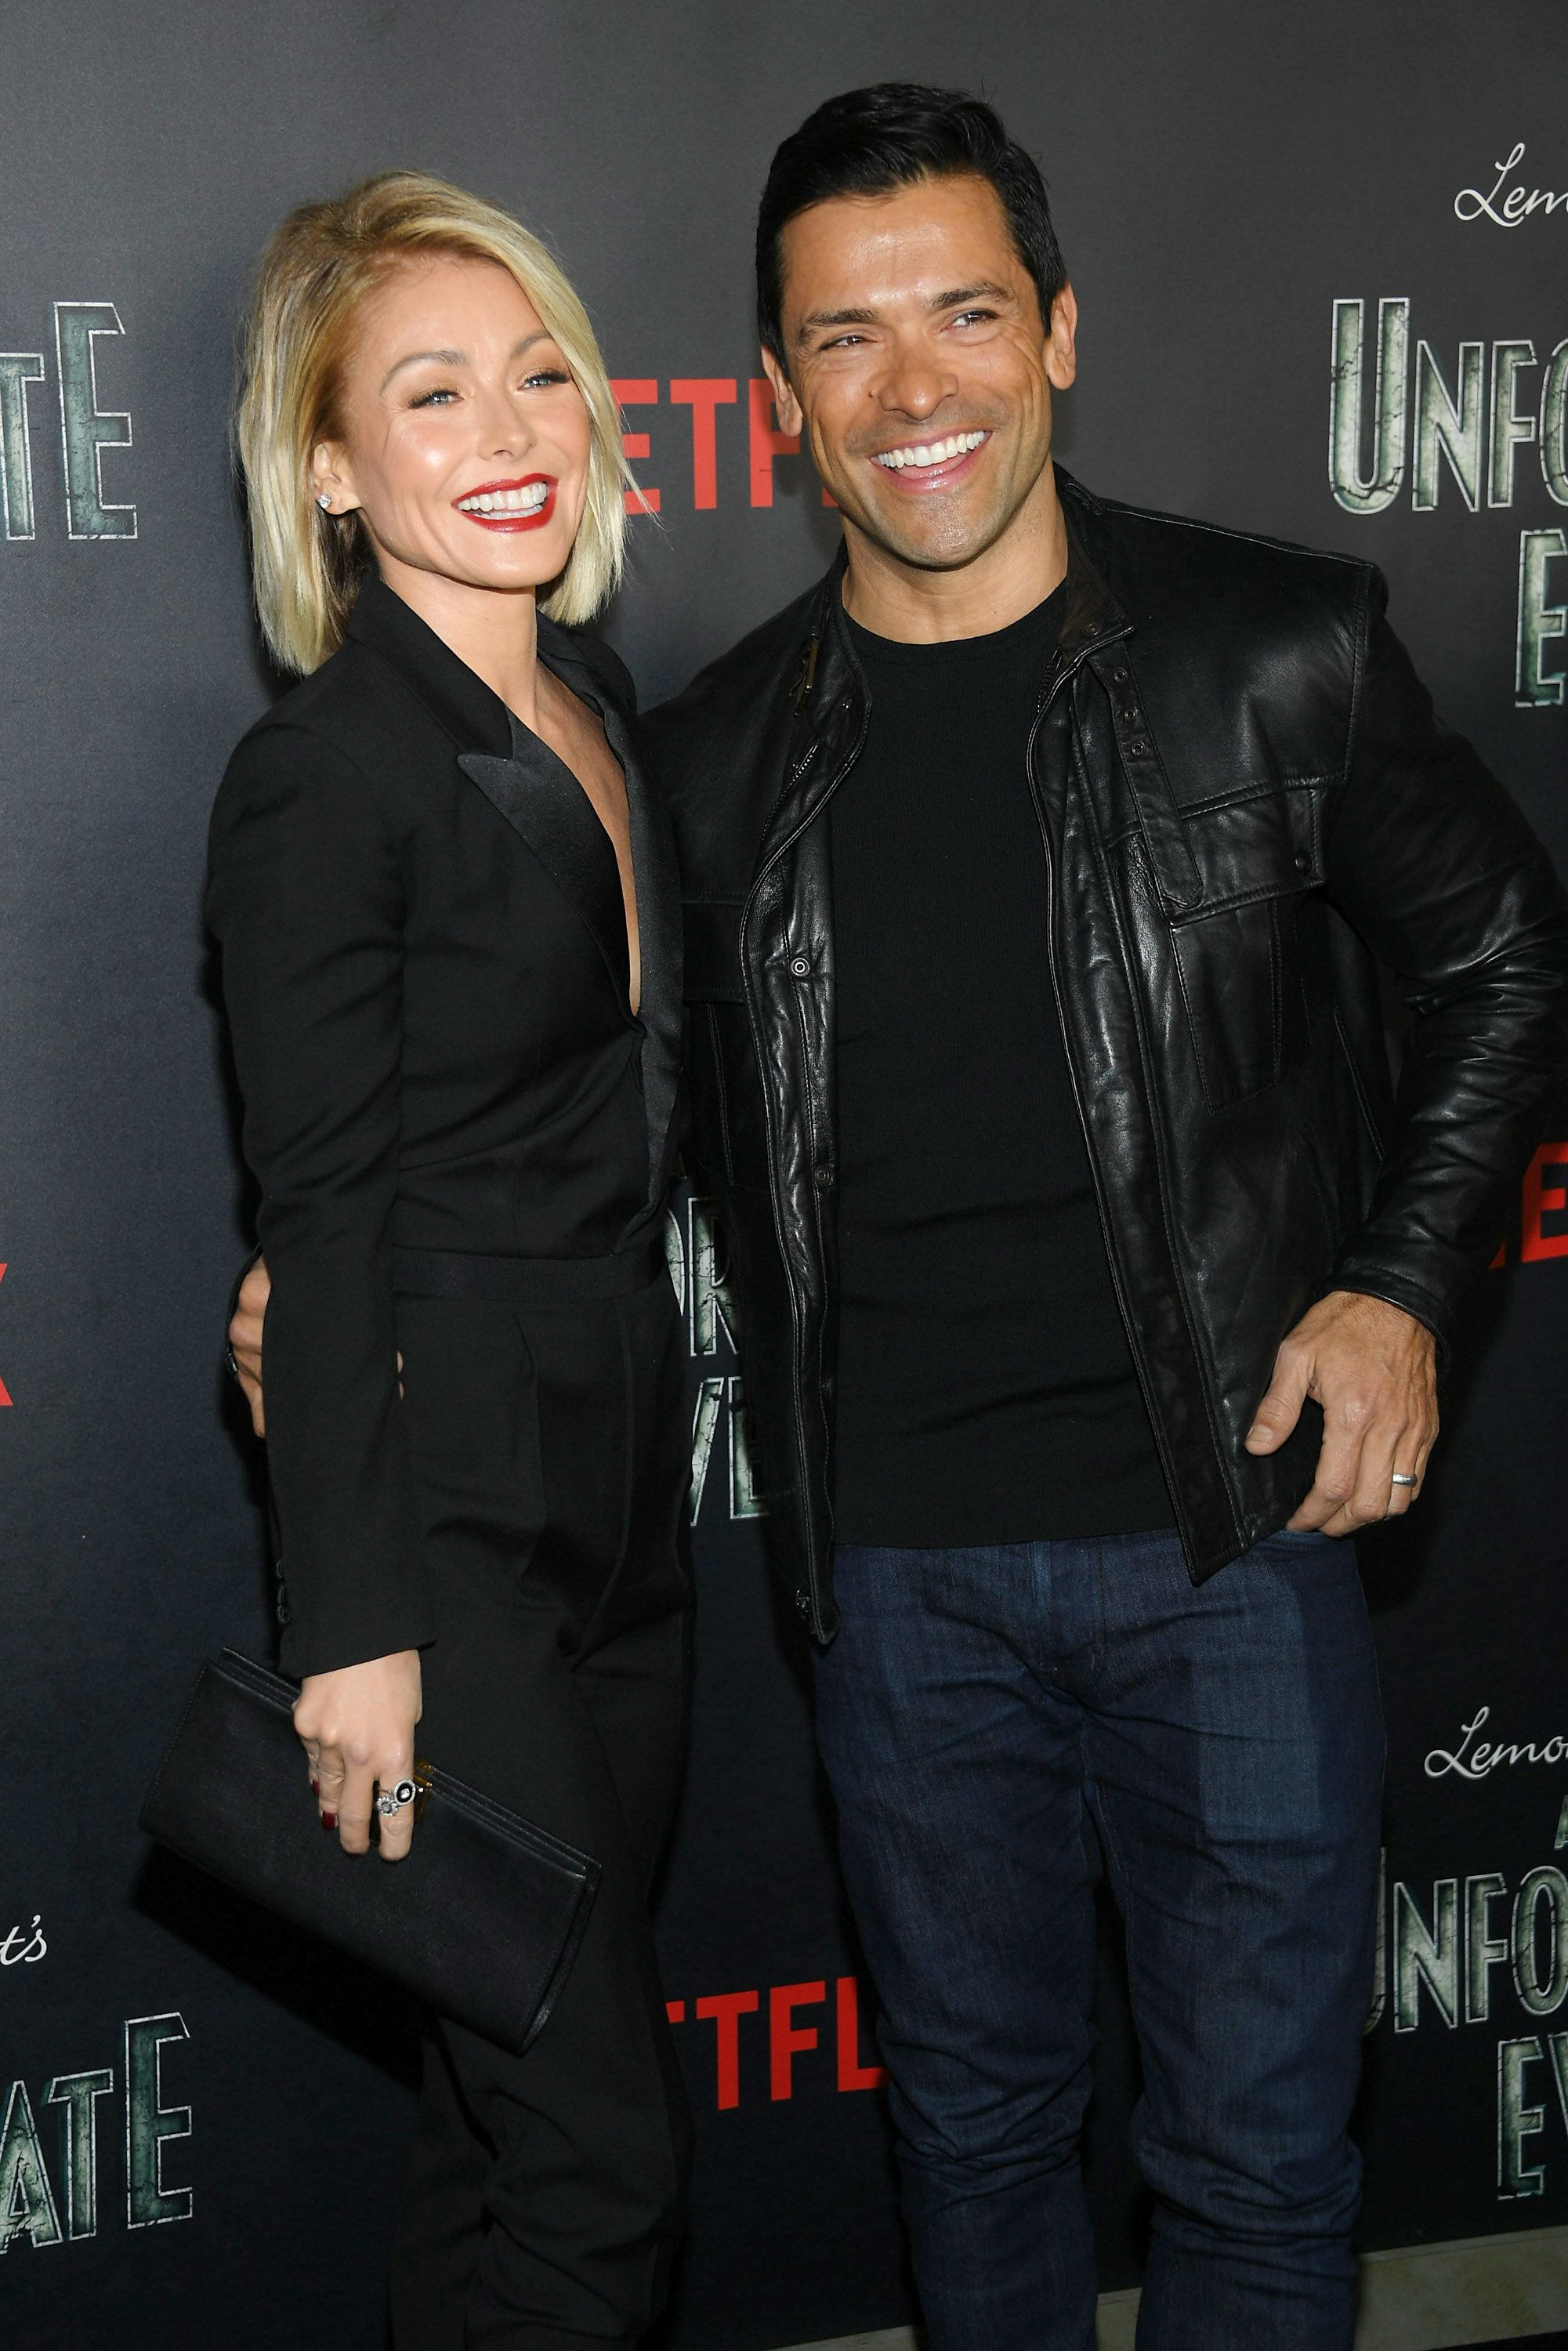 NEW YORK, NY - JANUARY 11:  Kelly Ripa and  Mark Consuelos attend the 'Lemony Snicket's a Series of Unfortunate Events' screening at AMC Lincoln Square Theater on January 11, 2017 in New York City.  (Photo by Dimitrios Kambouris/Getty Images)